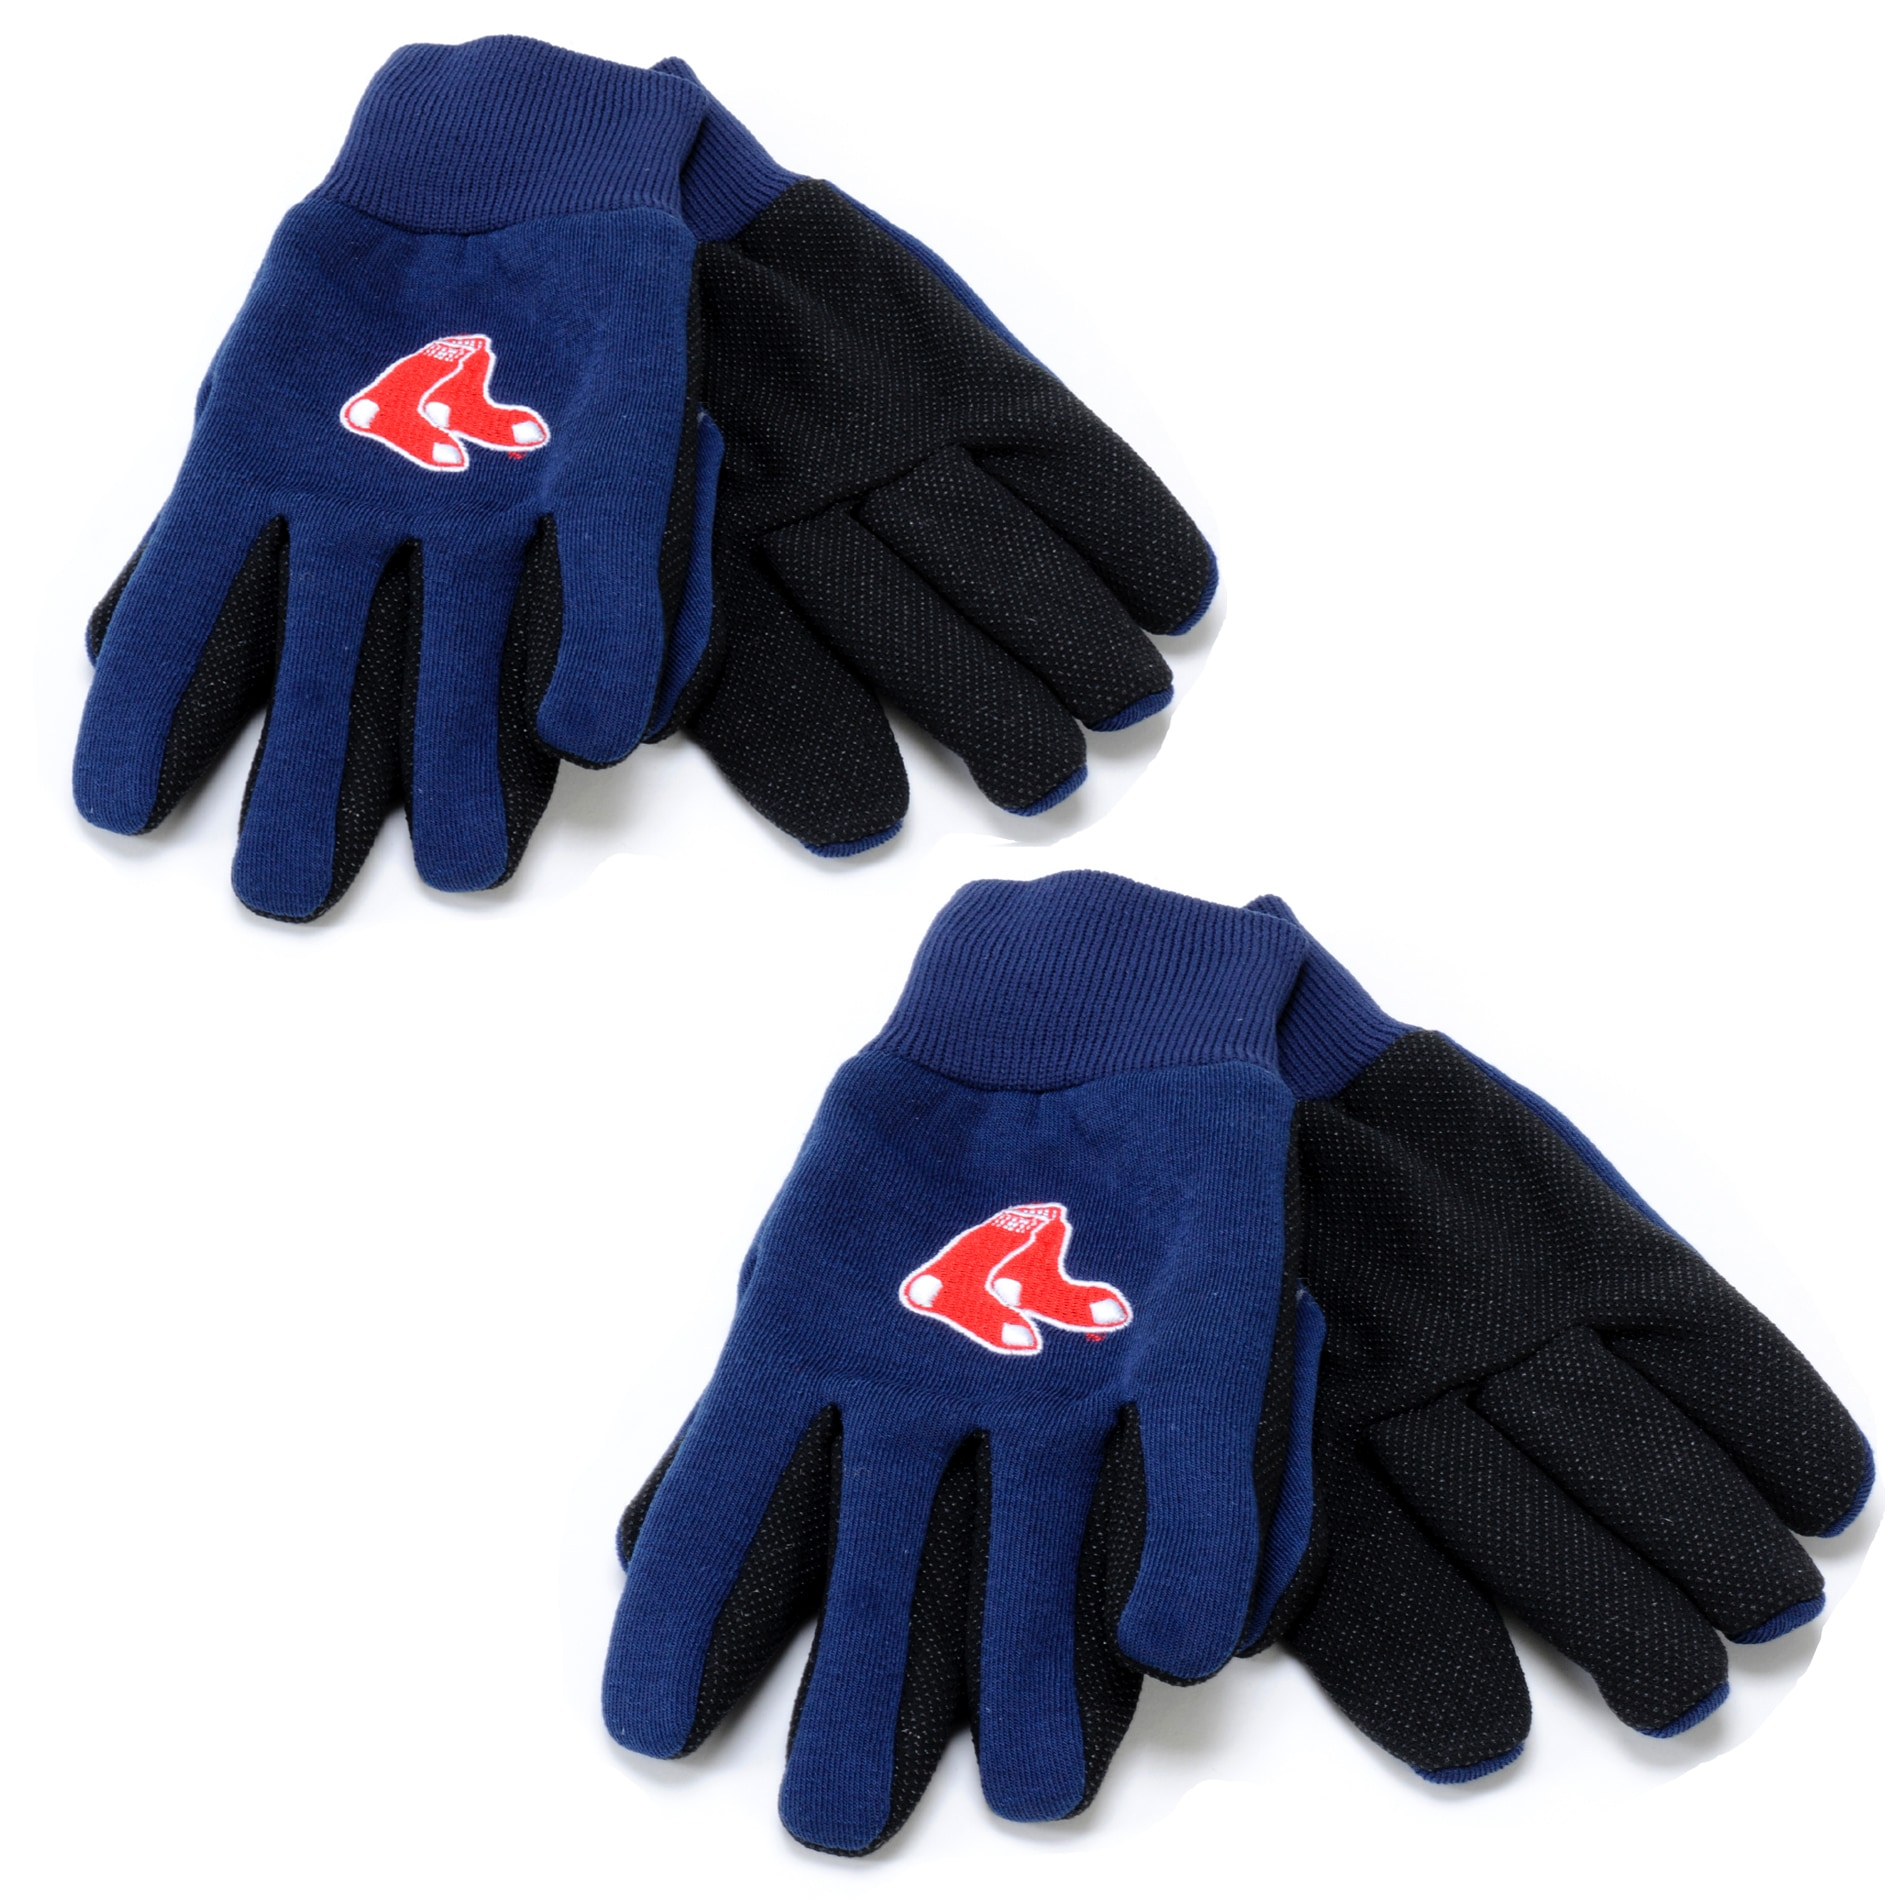 Boston Red Sox Two-tone Work Gloves (Set of 2 Pair)